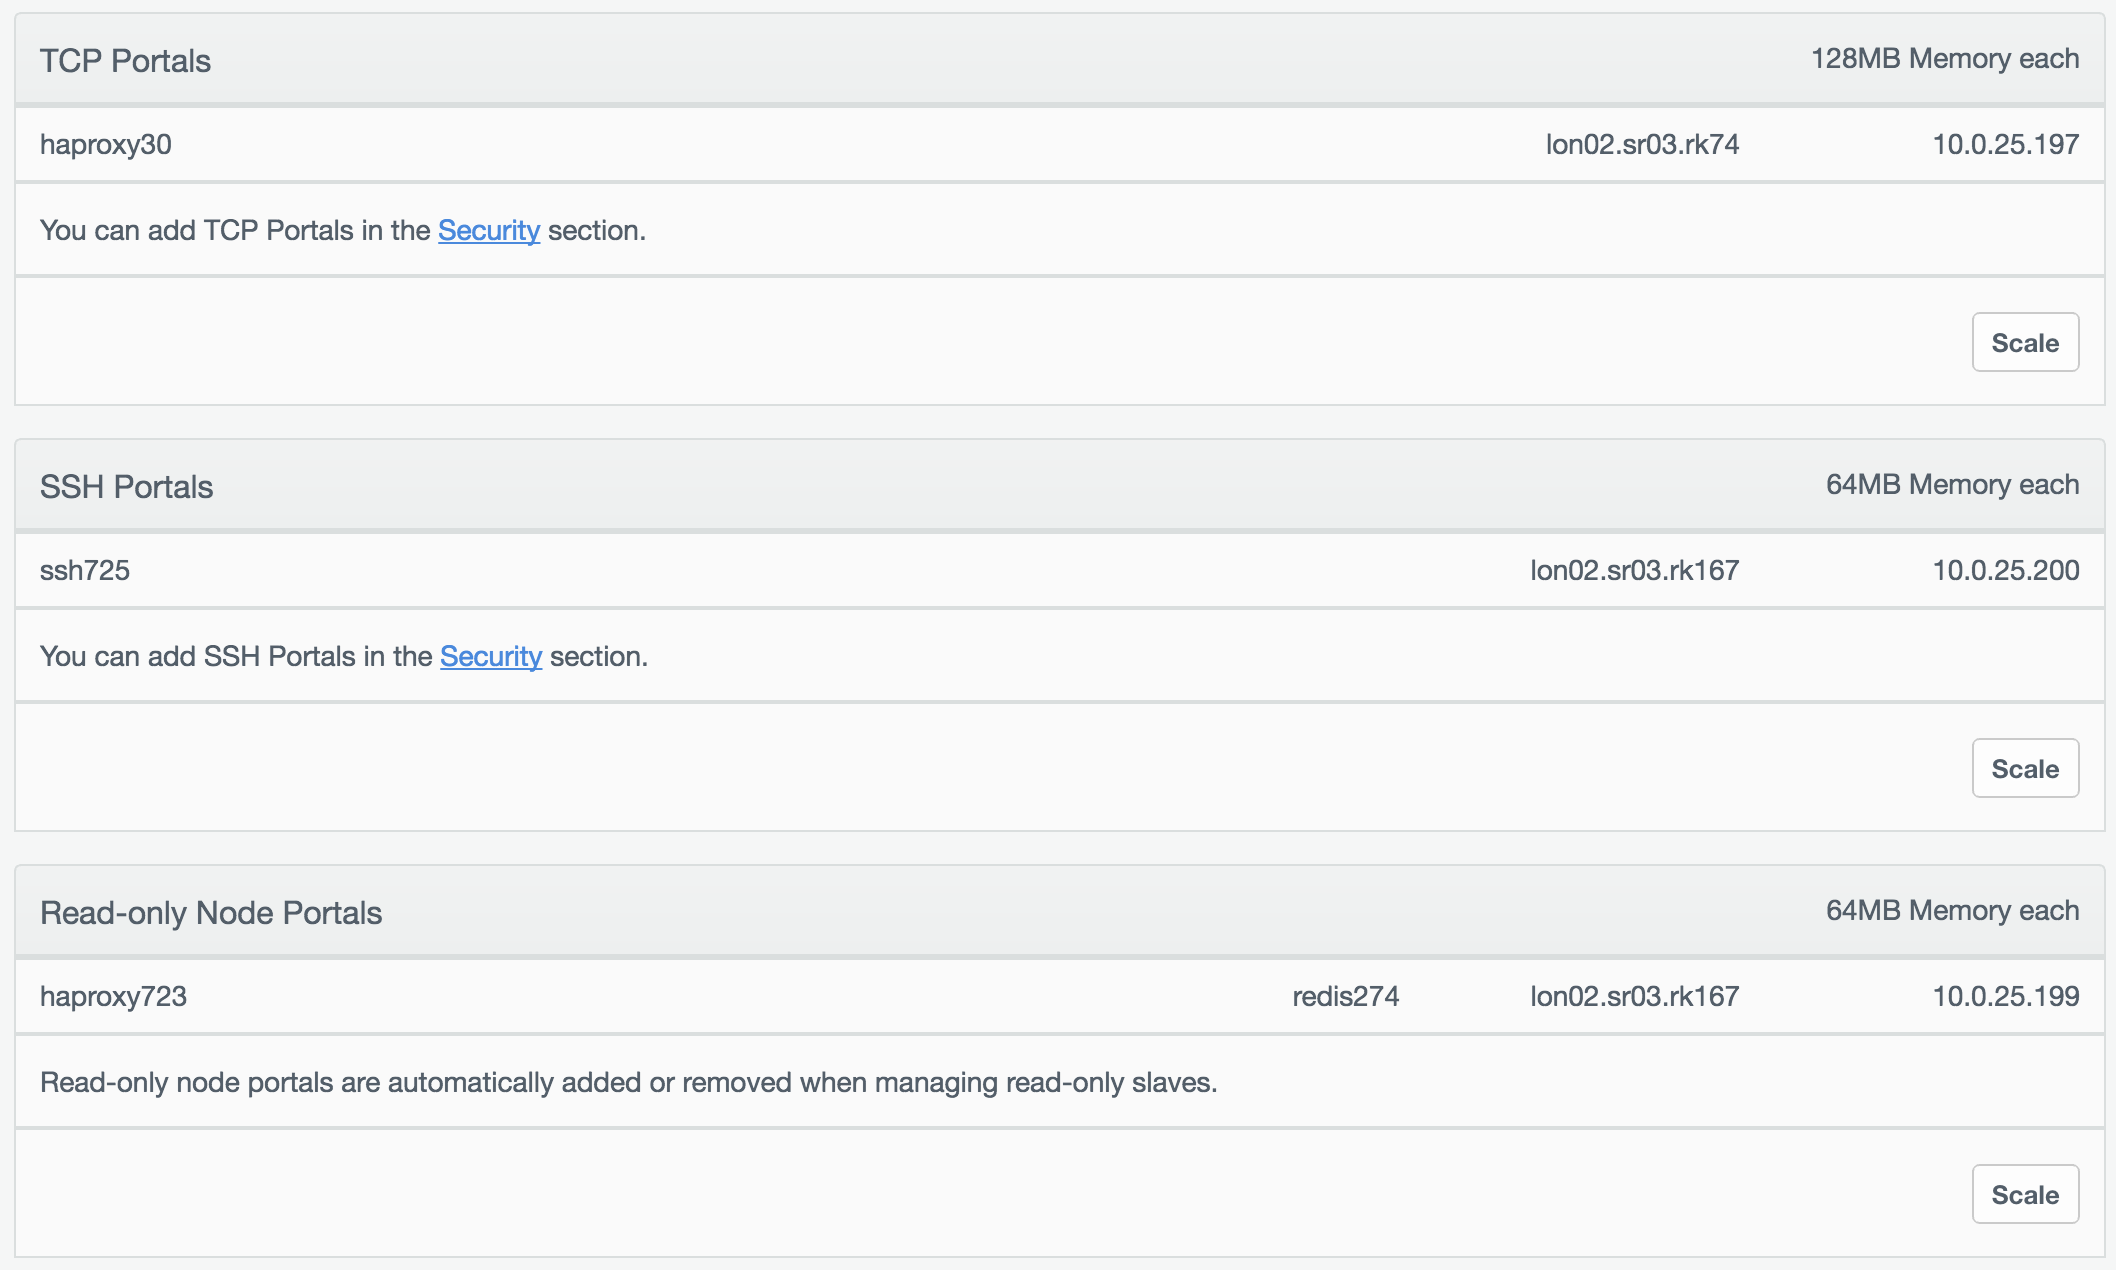 Listing of portals on the _Deployment Resources_ panel.